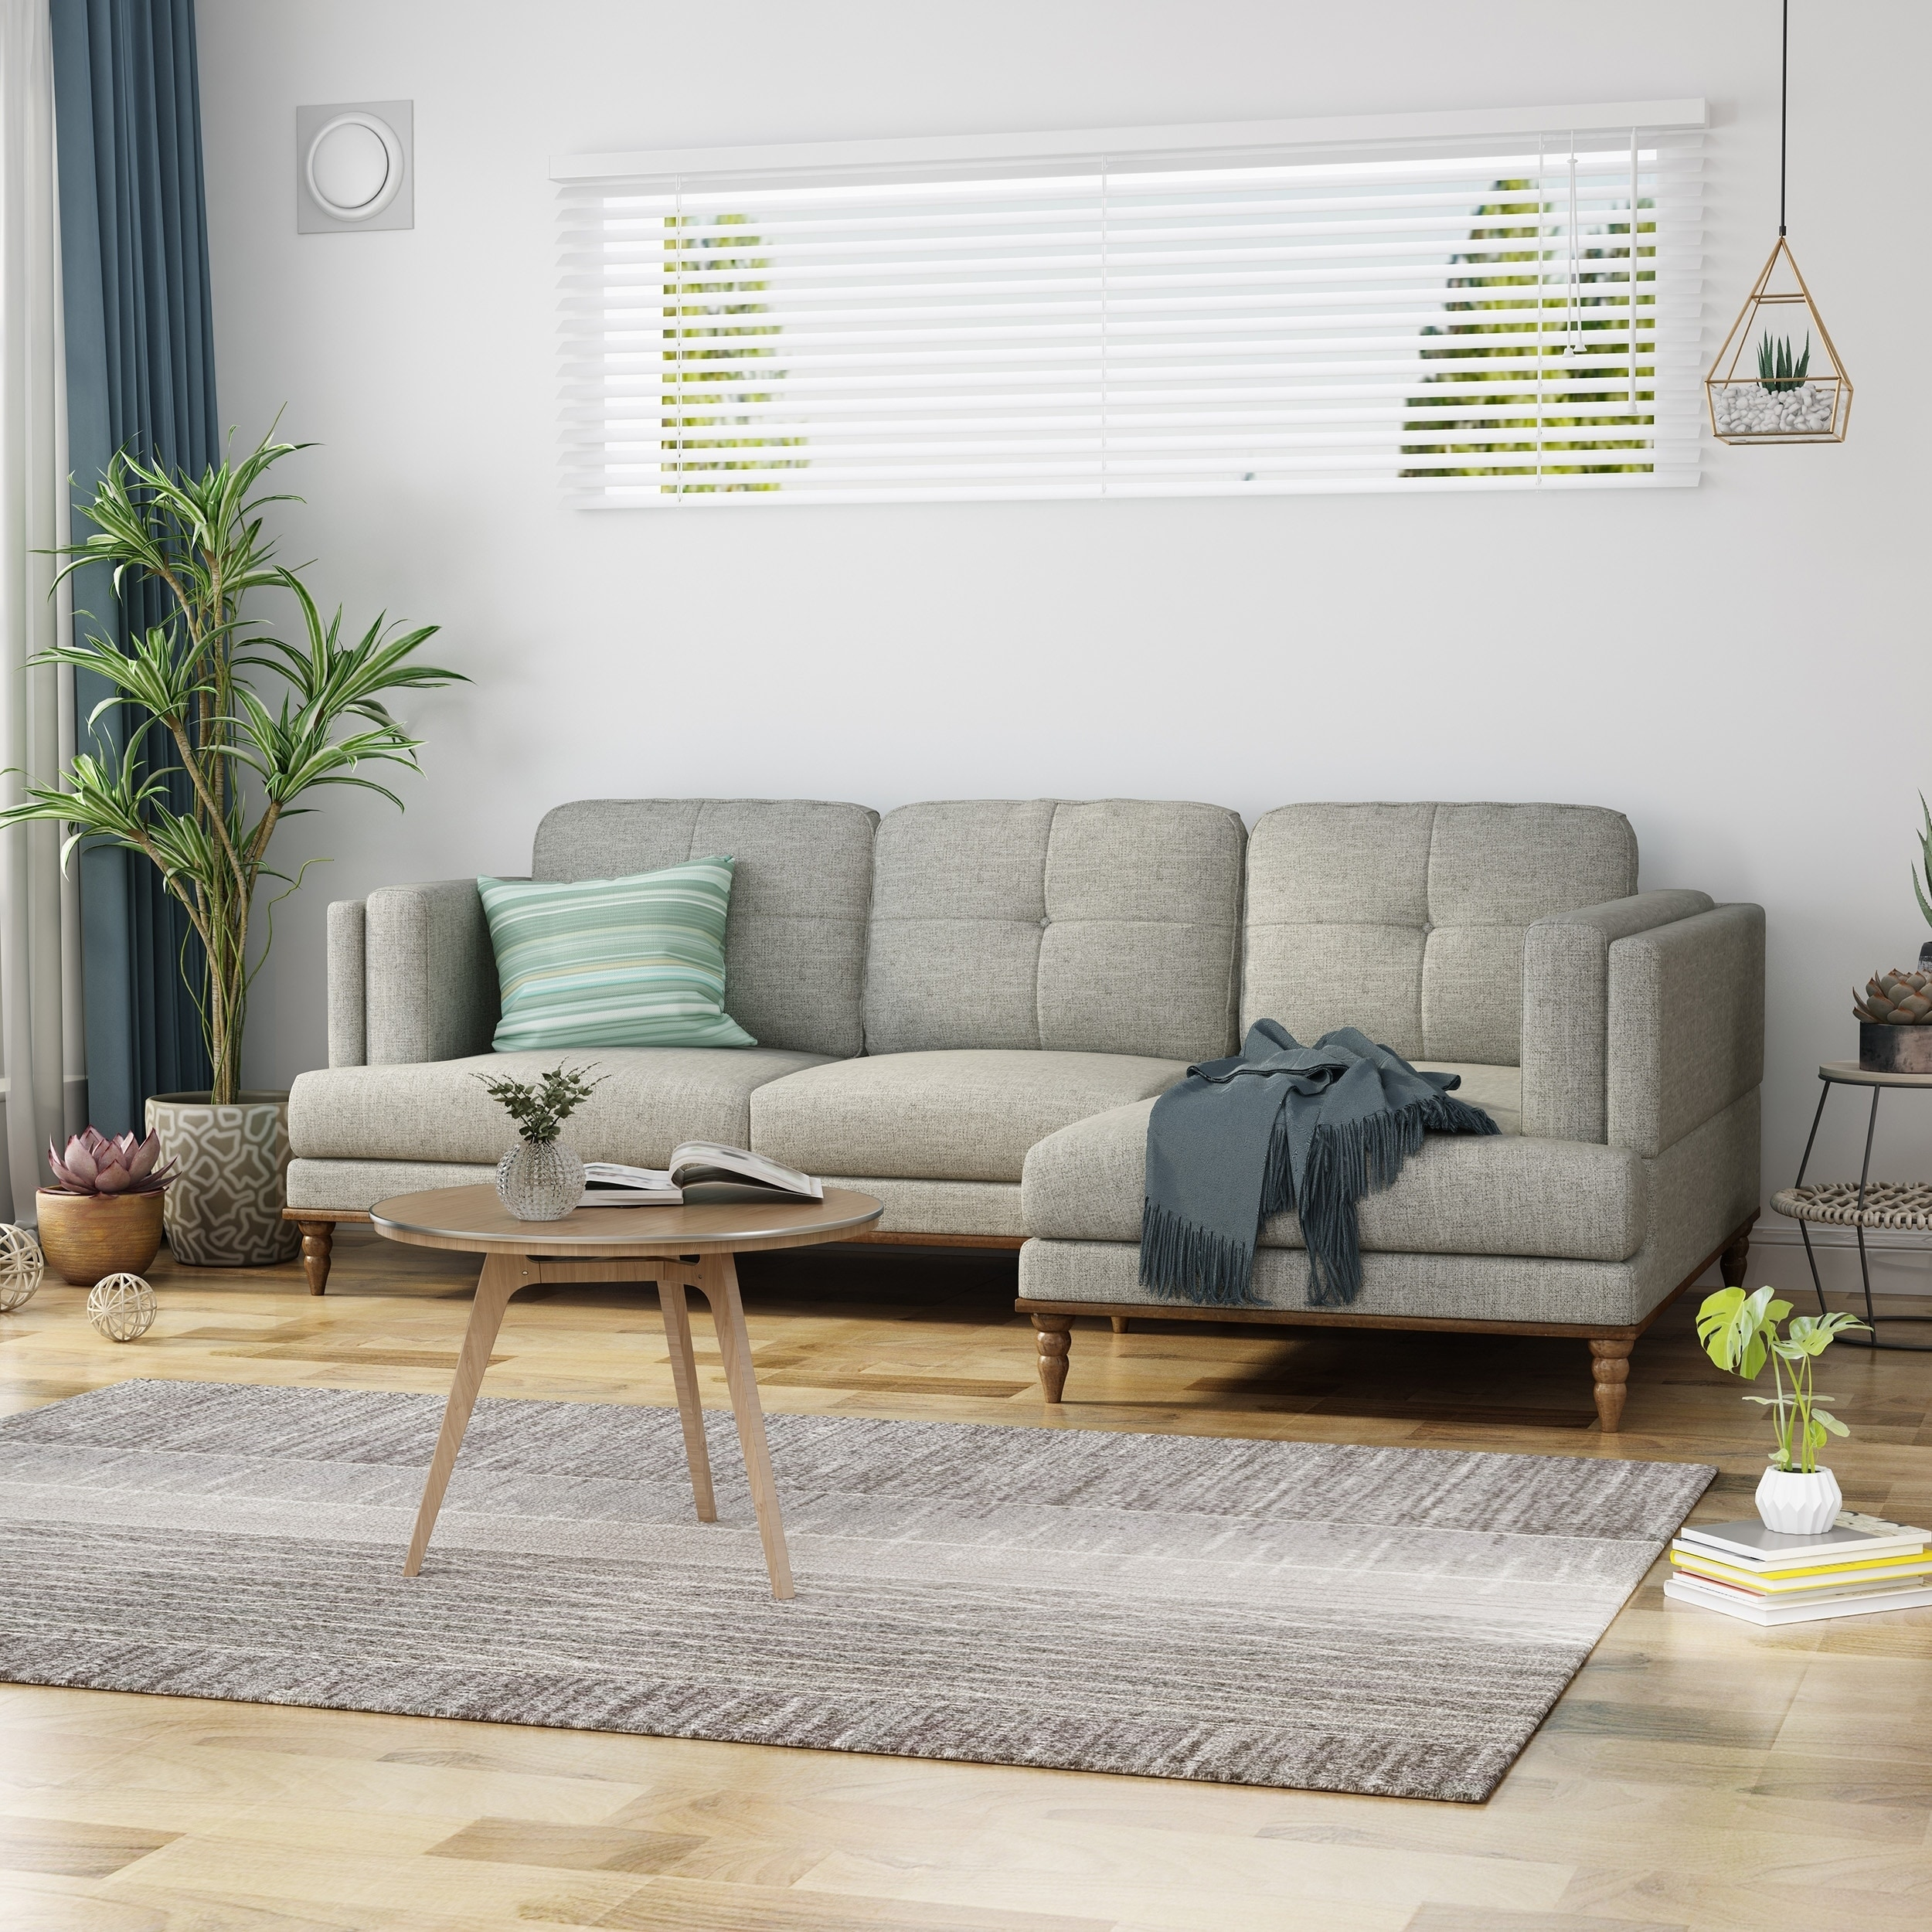 Hollyhock Sectional Couch Set With Chaise Lounge 3 Seater Upholstered Birch Legs By Christopher Knight Home On Free Shipping Today